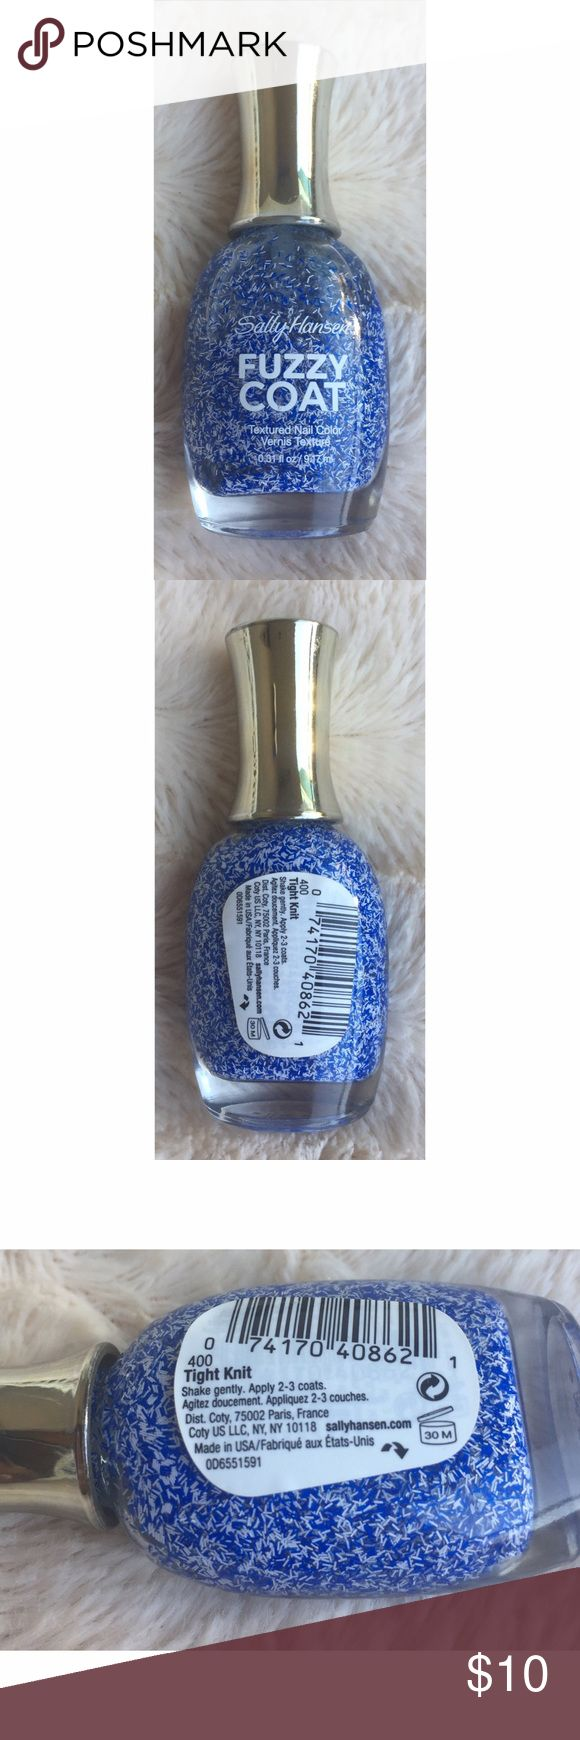 Sally Hansen fuzzy coat nail polish Texture nail color. Never been used. Brand new. 0.31 fl oz. Sally Hansen color - 400 tight knit. Vernis texture Sally Hansen  Makeup